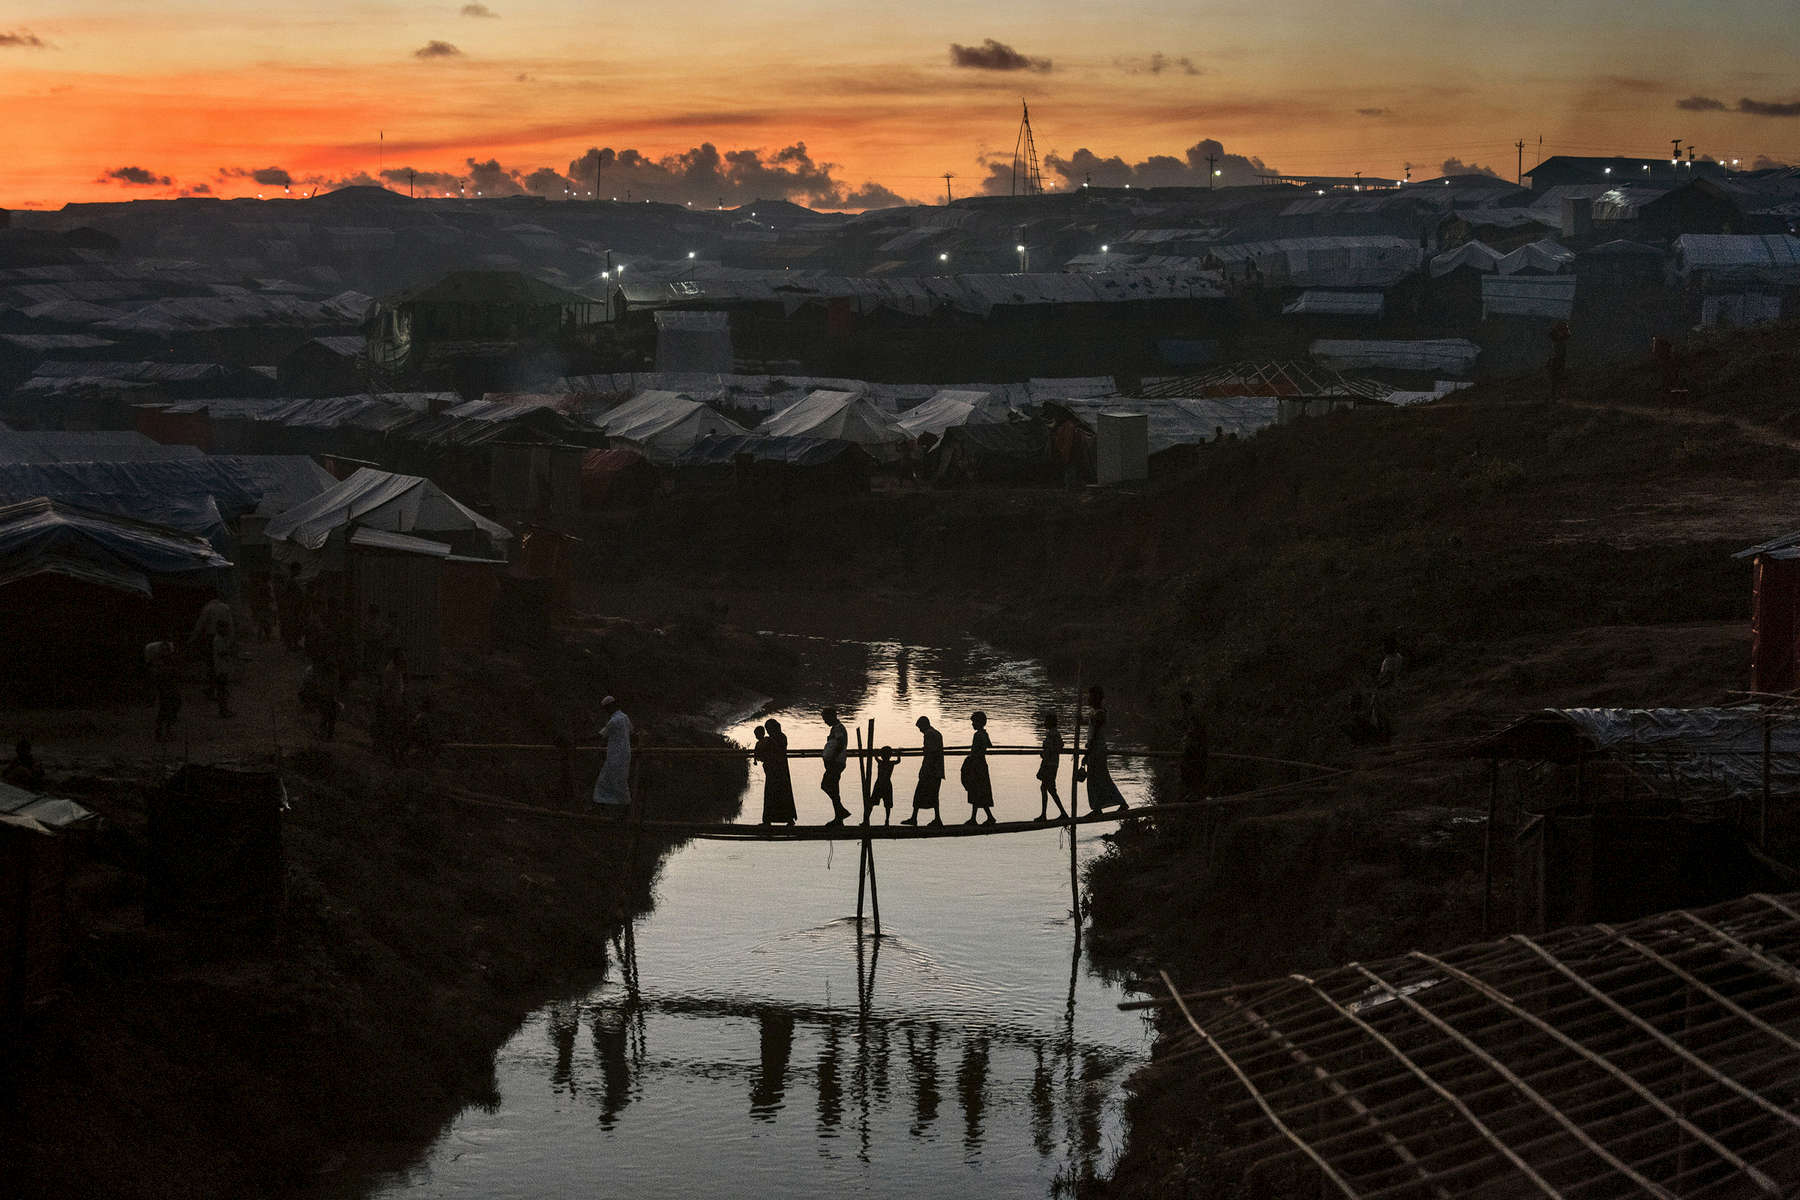 Rohingya cross a bamboo bridge over a stream as the sun sets October 13, inside the sprawling Kutuplaong refugee camp. The refugee emergency unfolded in late August after an attack on state security forces by Rohingya insurgents, triggering a brutal military crackdown that has forced more than half of the country's 1.1 million population fleeing to neighboring Bangladesh creating the fastest cross-border exodus ever witnessed with over 655,000 new arrivals.